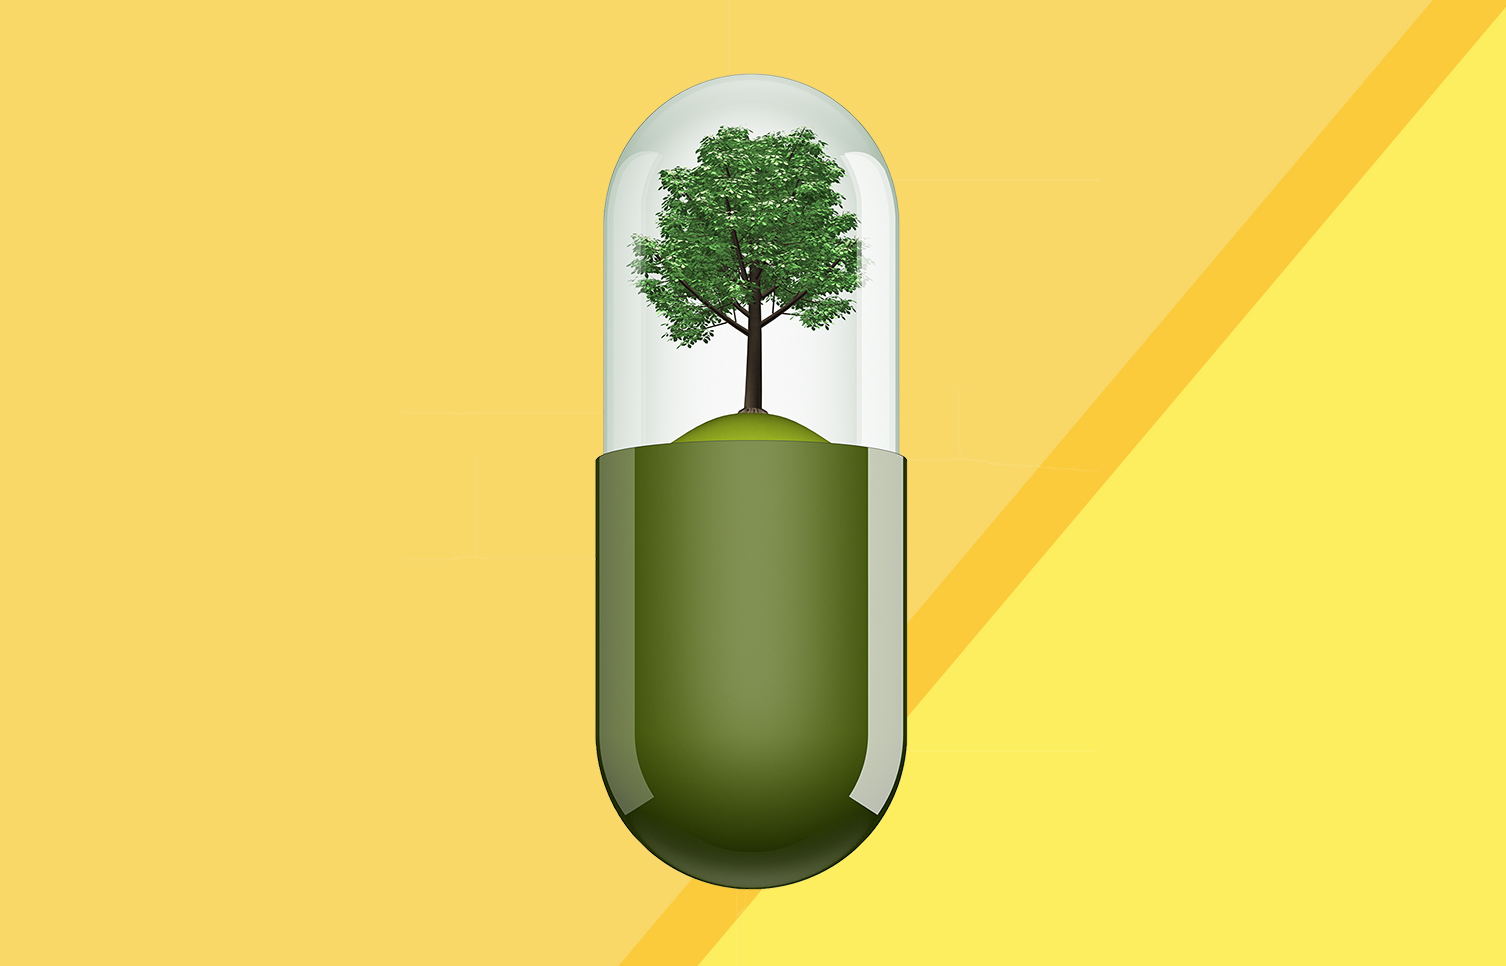 prescribing-plants